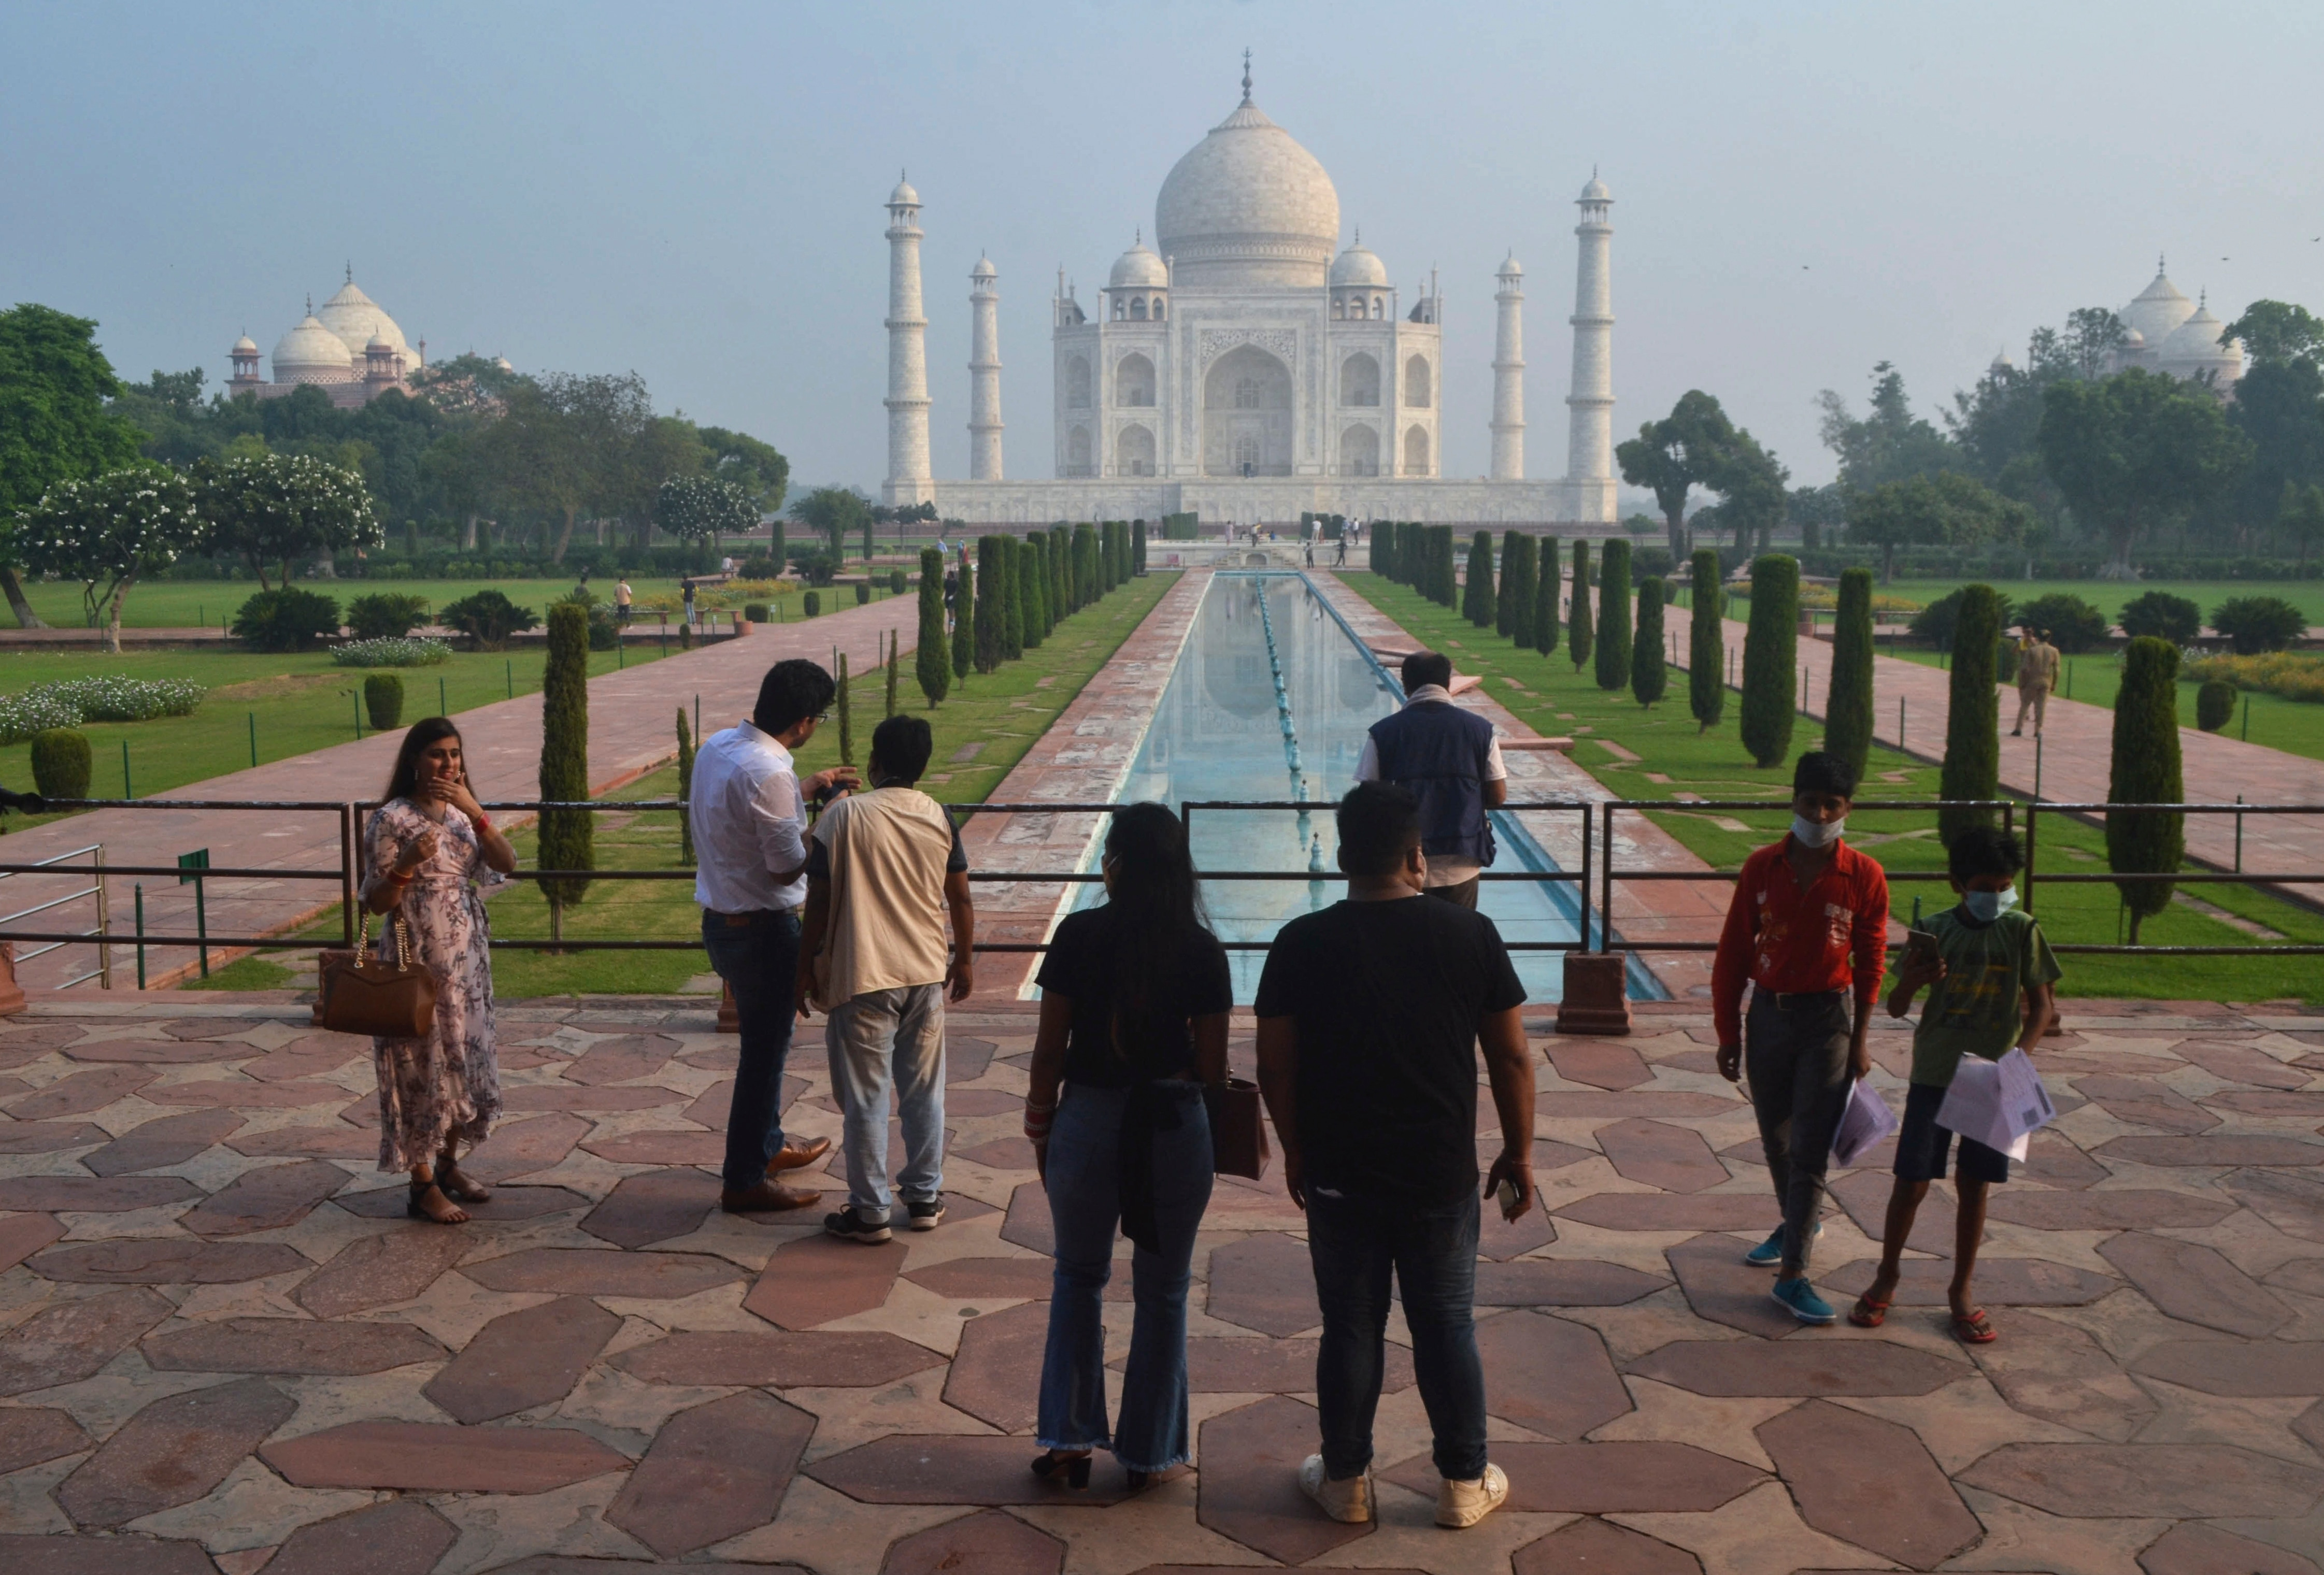 Slow Reopening for India's Taj Mahal After 6-Month COVID Shutdown